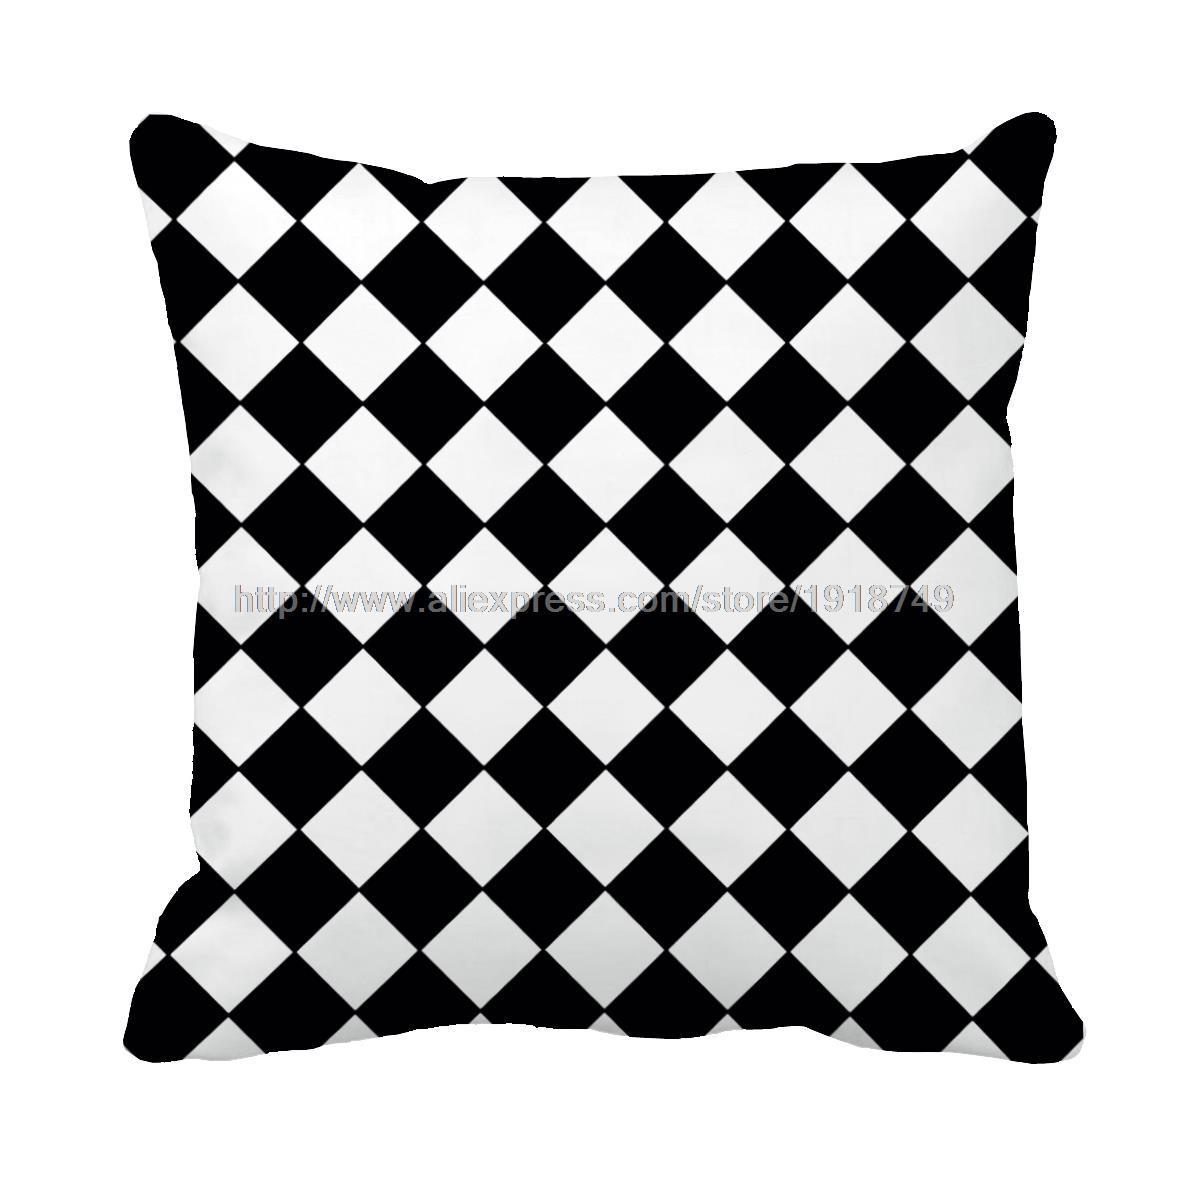 black and white Houndstooth printed decorative geometric throw pillow case sofa decor modern cushion cover